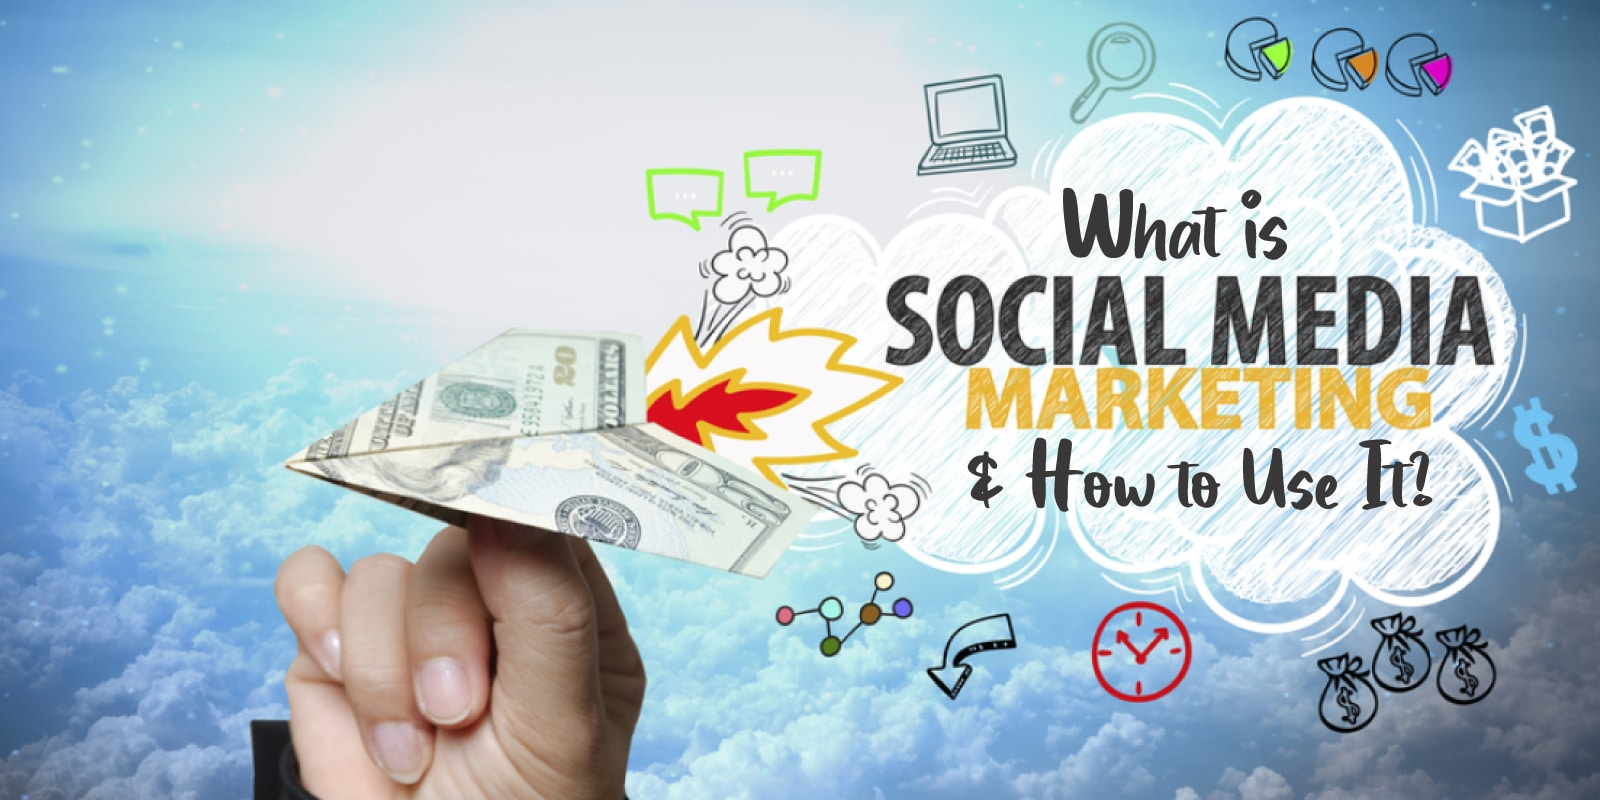 What is Social Media Marketing and How to Use It?